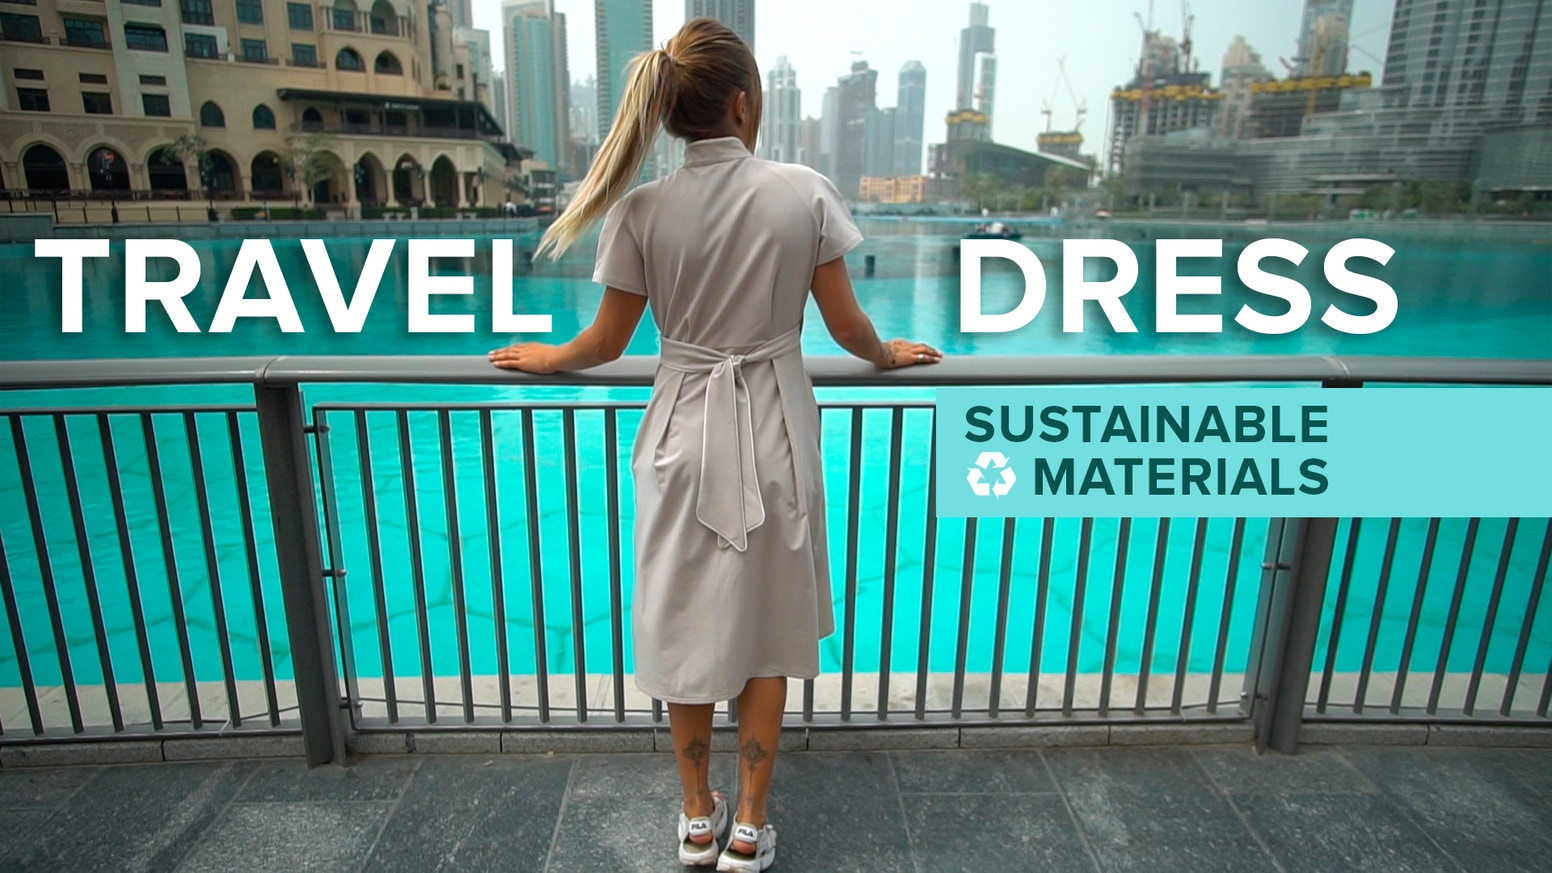 15 travel features, 3 pockets, soft, lightweight wrinkle resistant sustainable&recycled material.  Buy dress - clean the ocean!